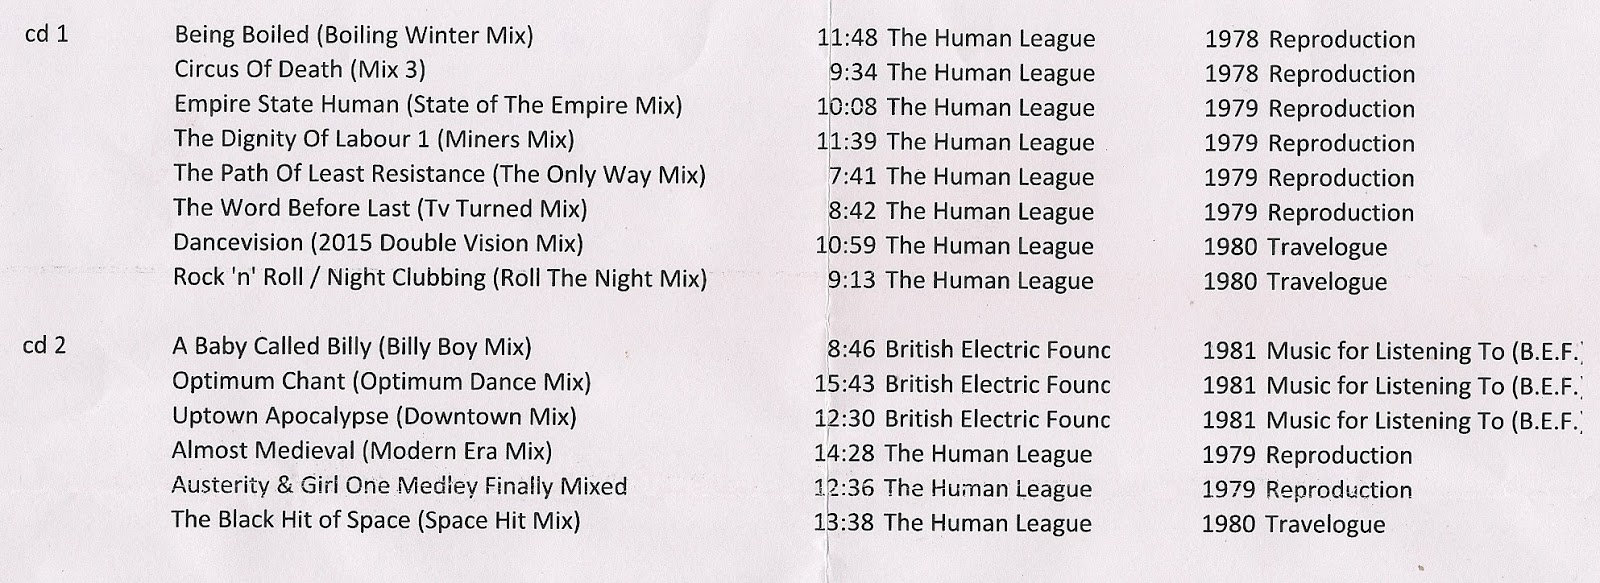 The Human League - Reproduction Lyrics and Tracklist | Genius